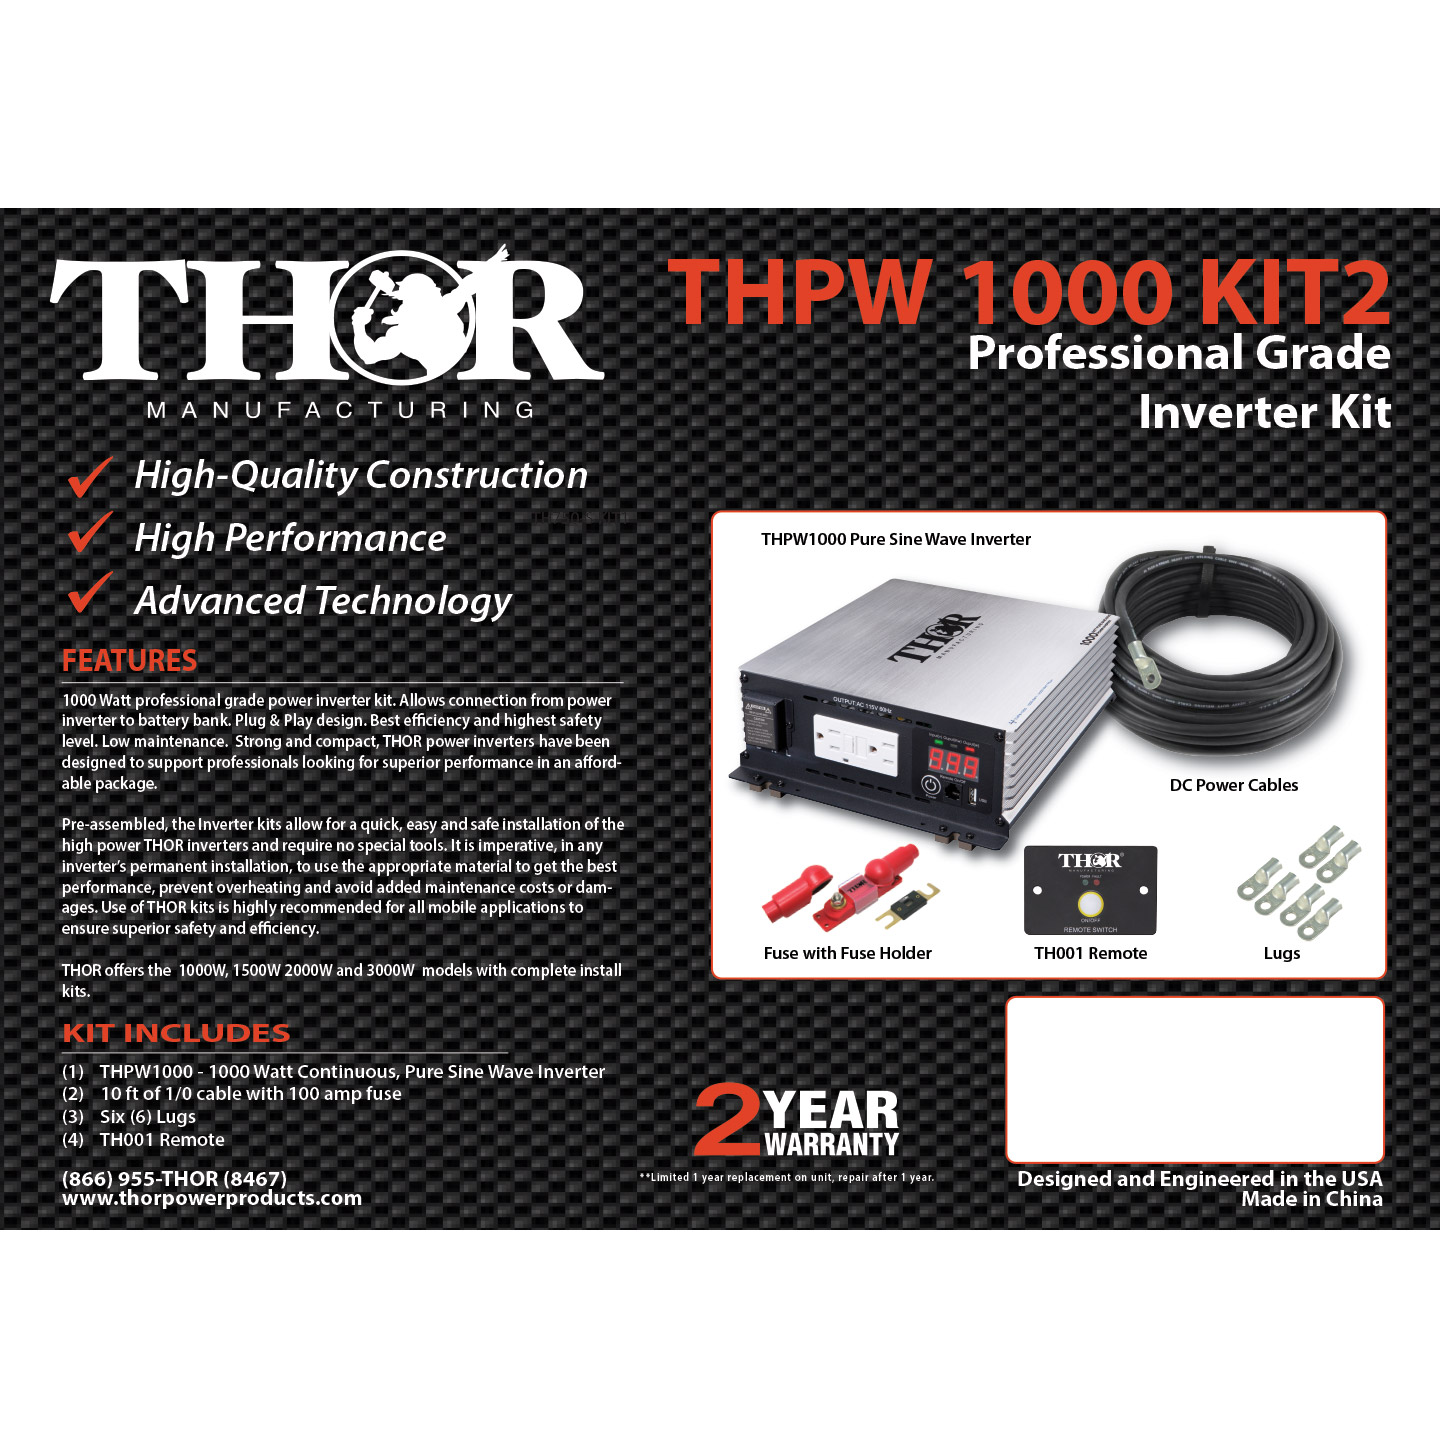 Psw Inverter Install Kits Archives Thor Manufacturing 1000 Watt Amp Wiring Kit Thpw1000 2